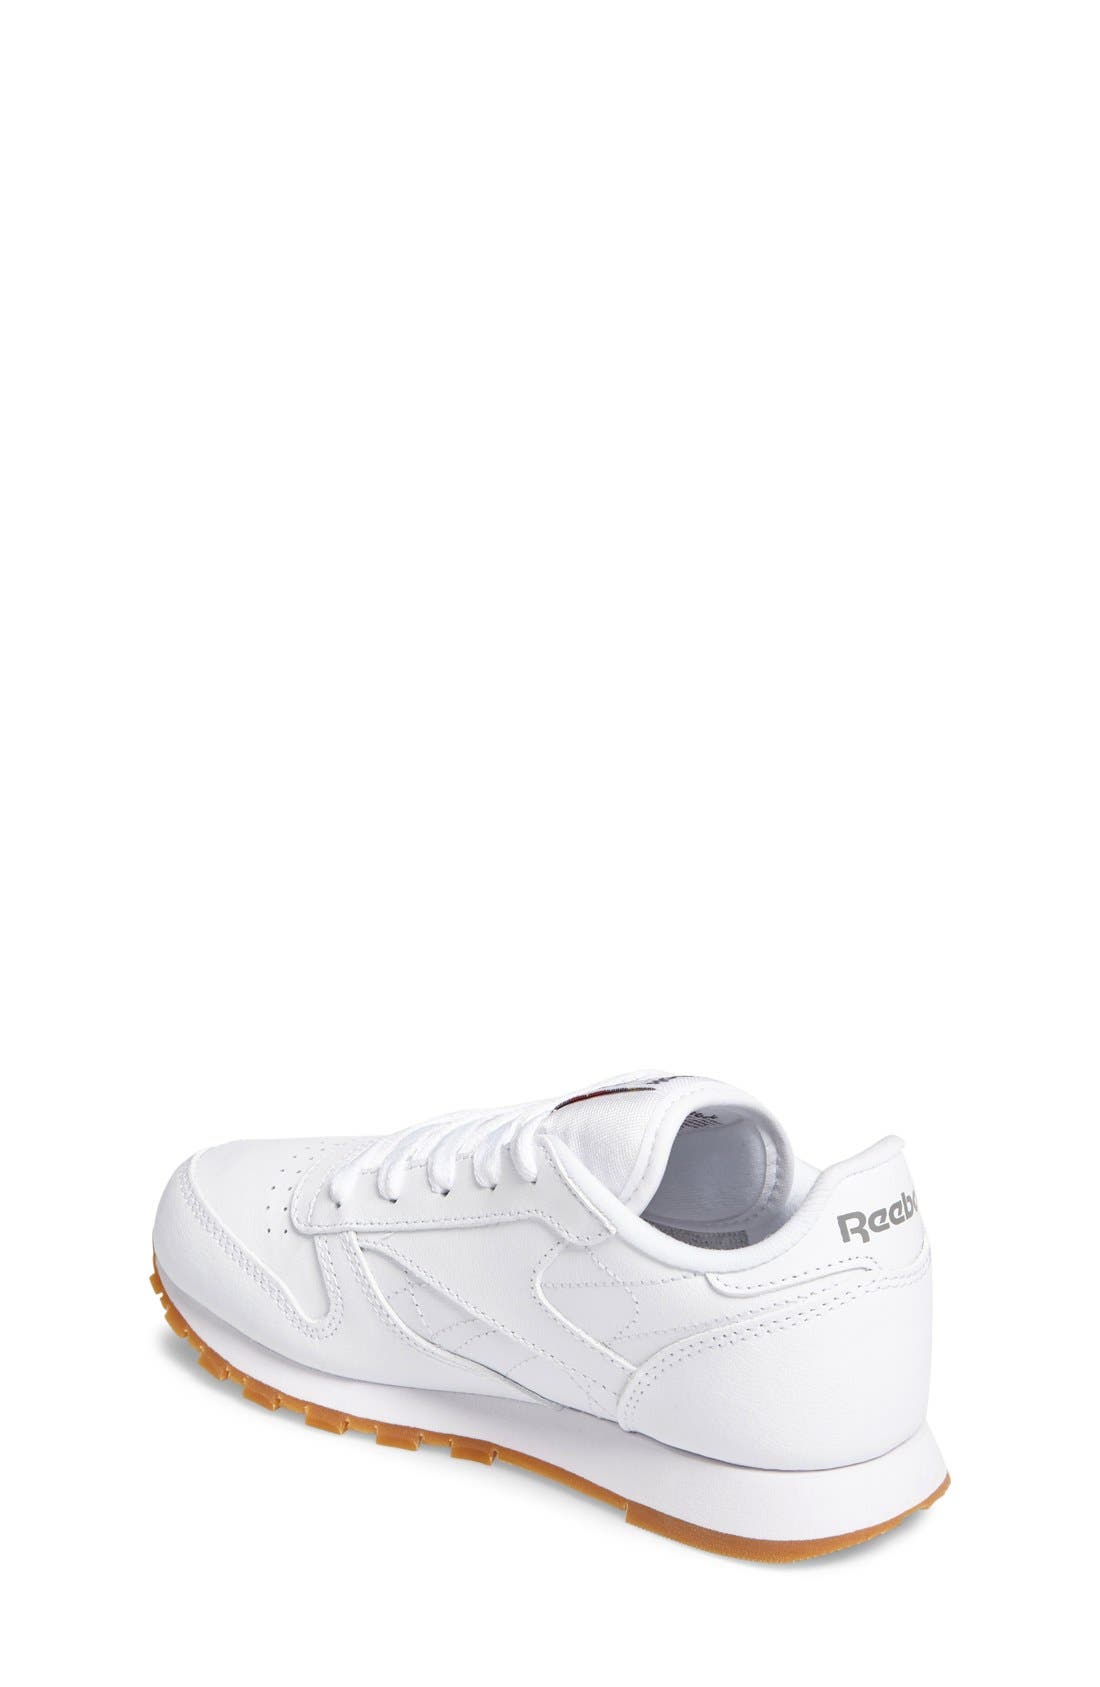 Classic Leather Sneaker,                             Alternate thumbnail 2, color,                             White/ Gum